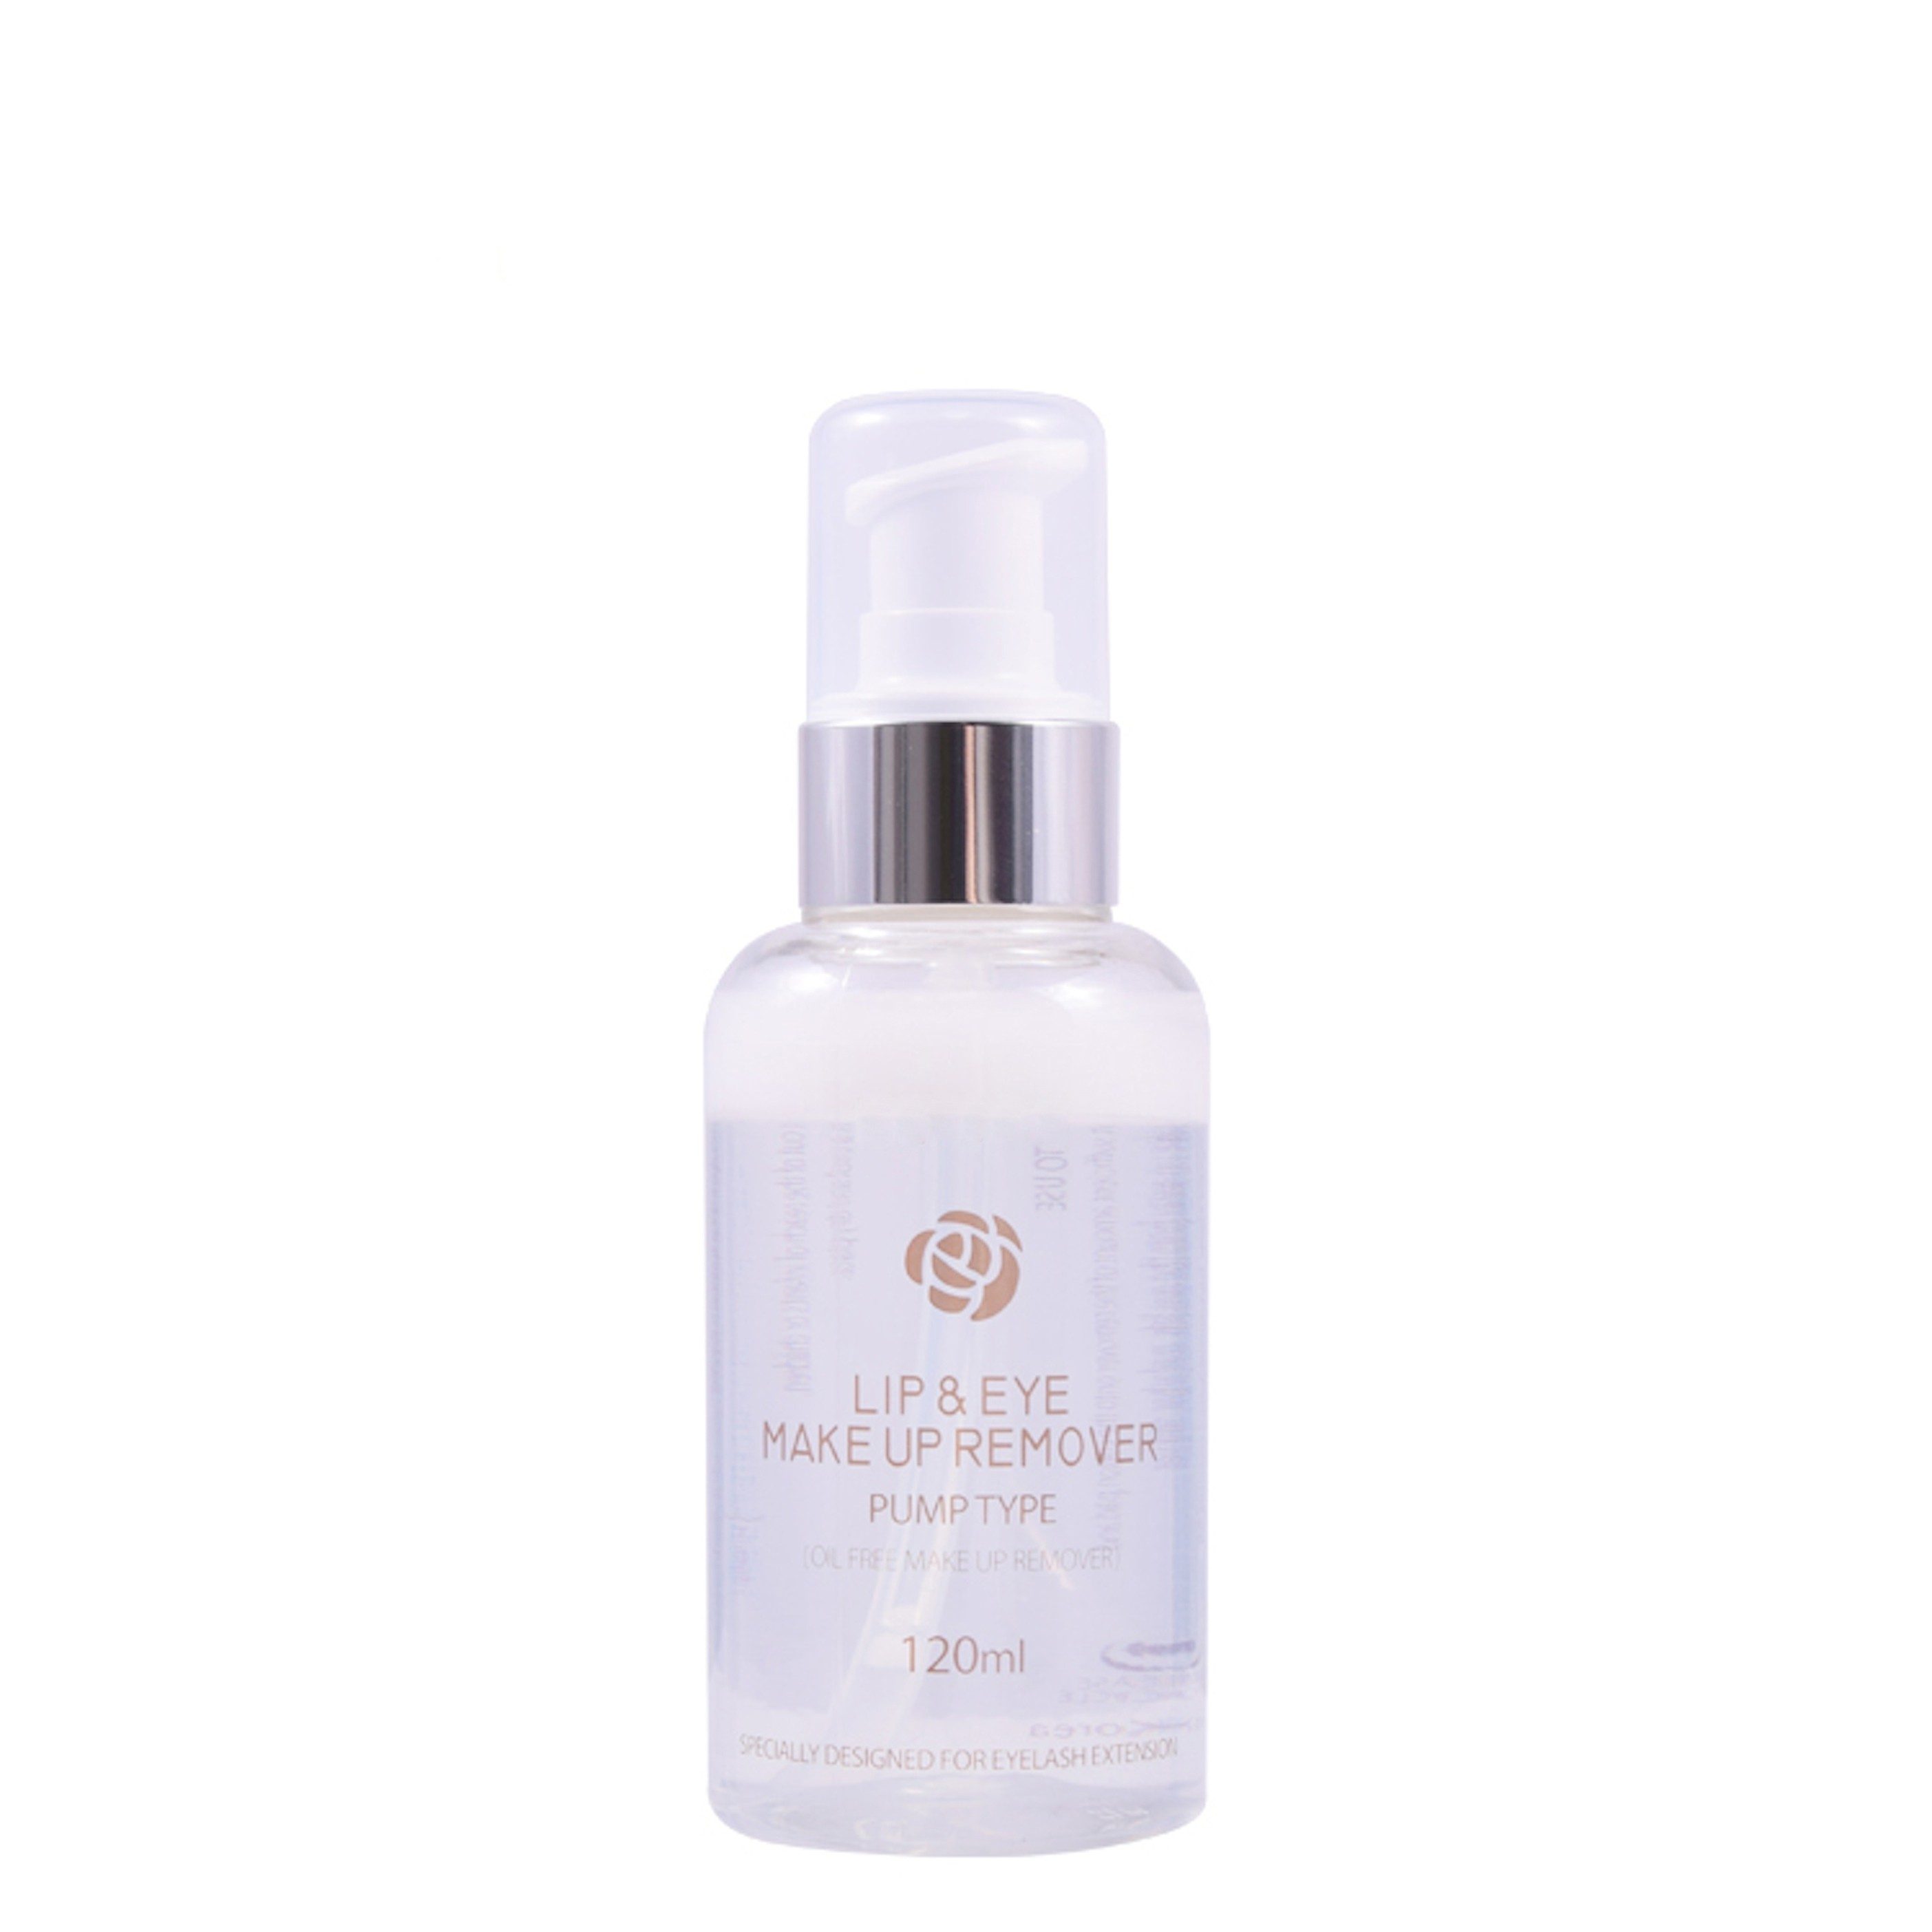 Lip & eye makeup remover - 120 ml